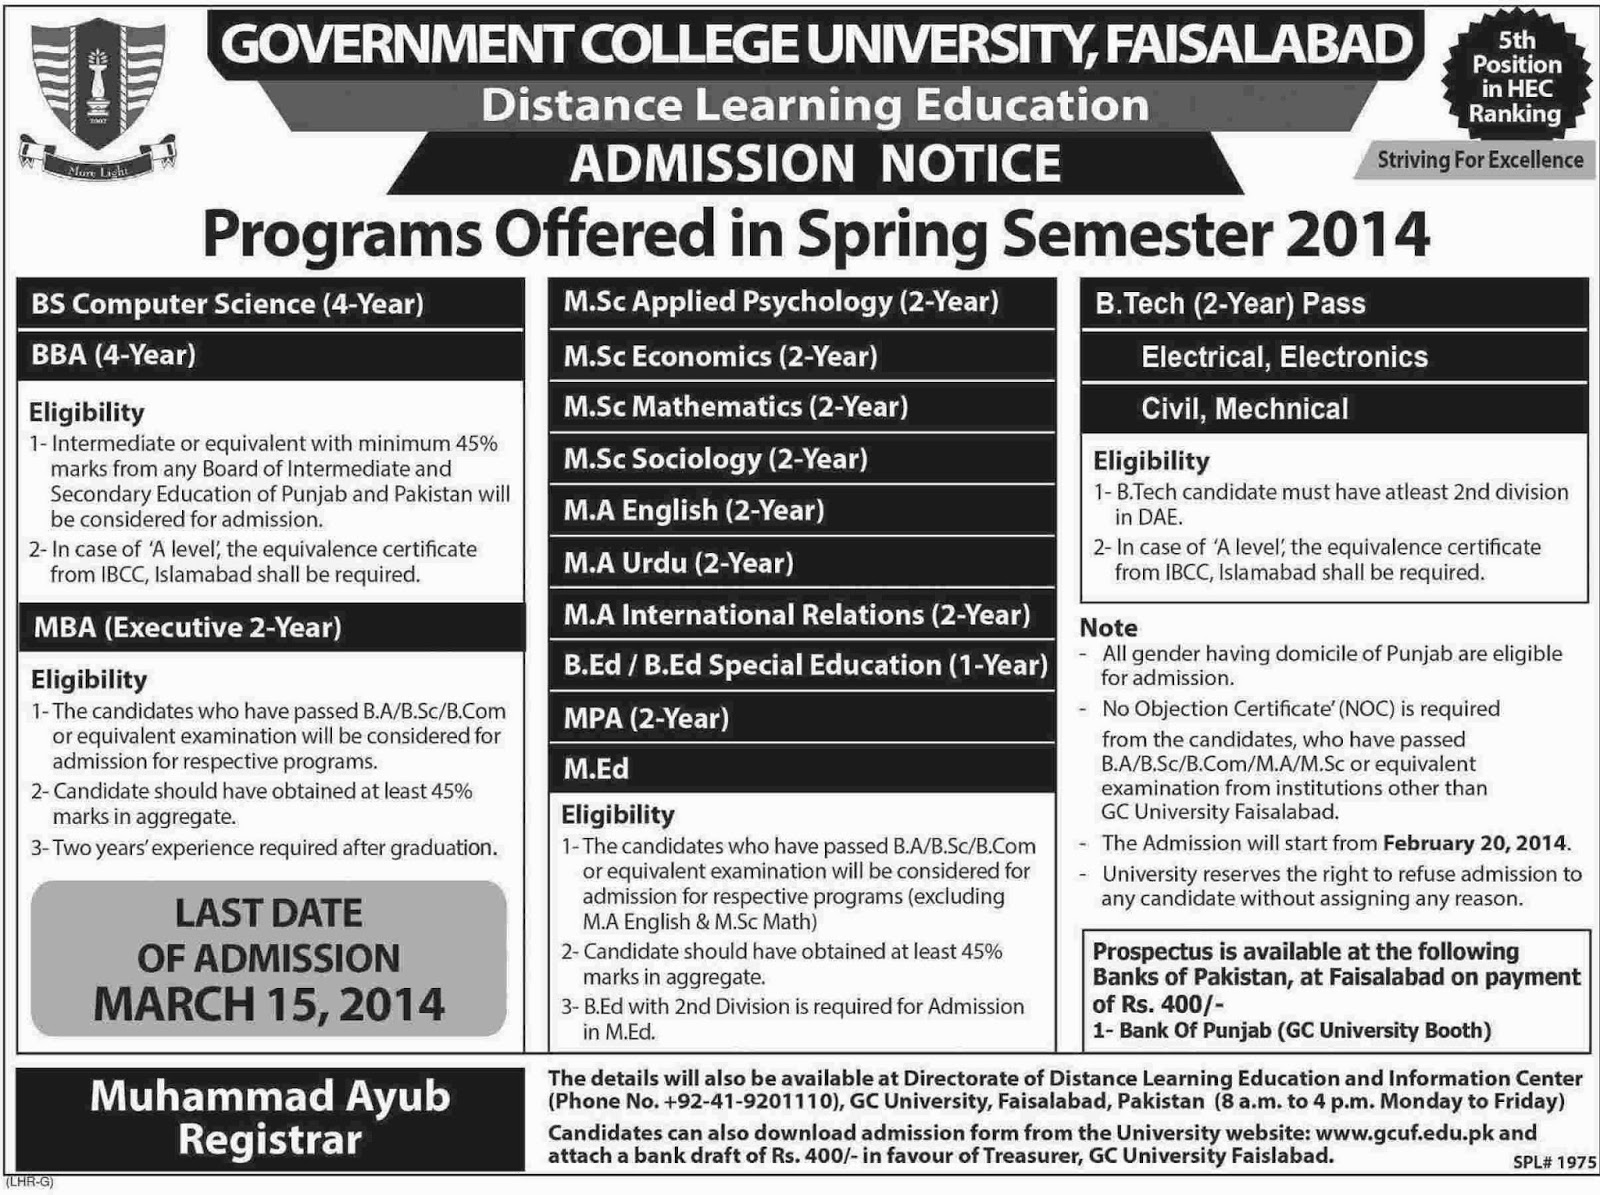 Gc uni fsd admission 2014